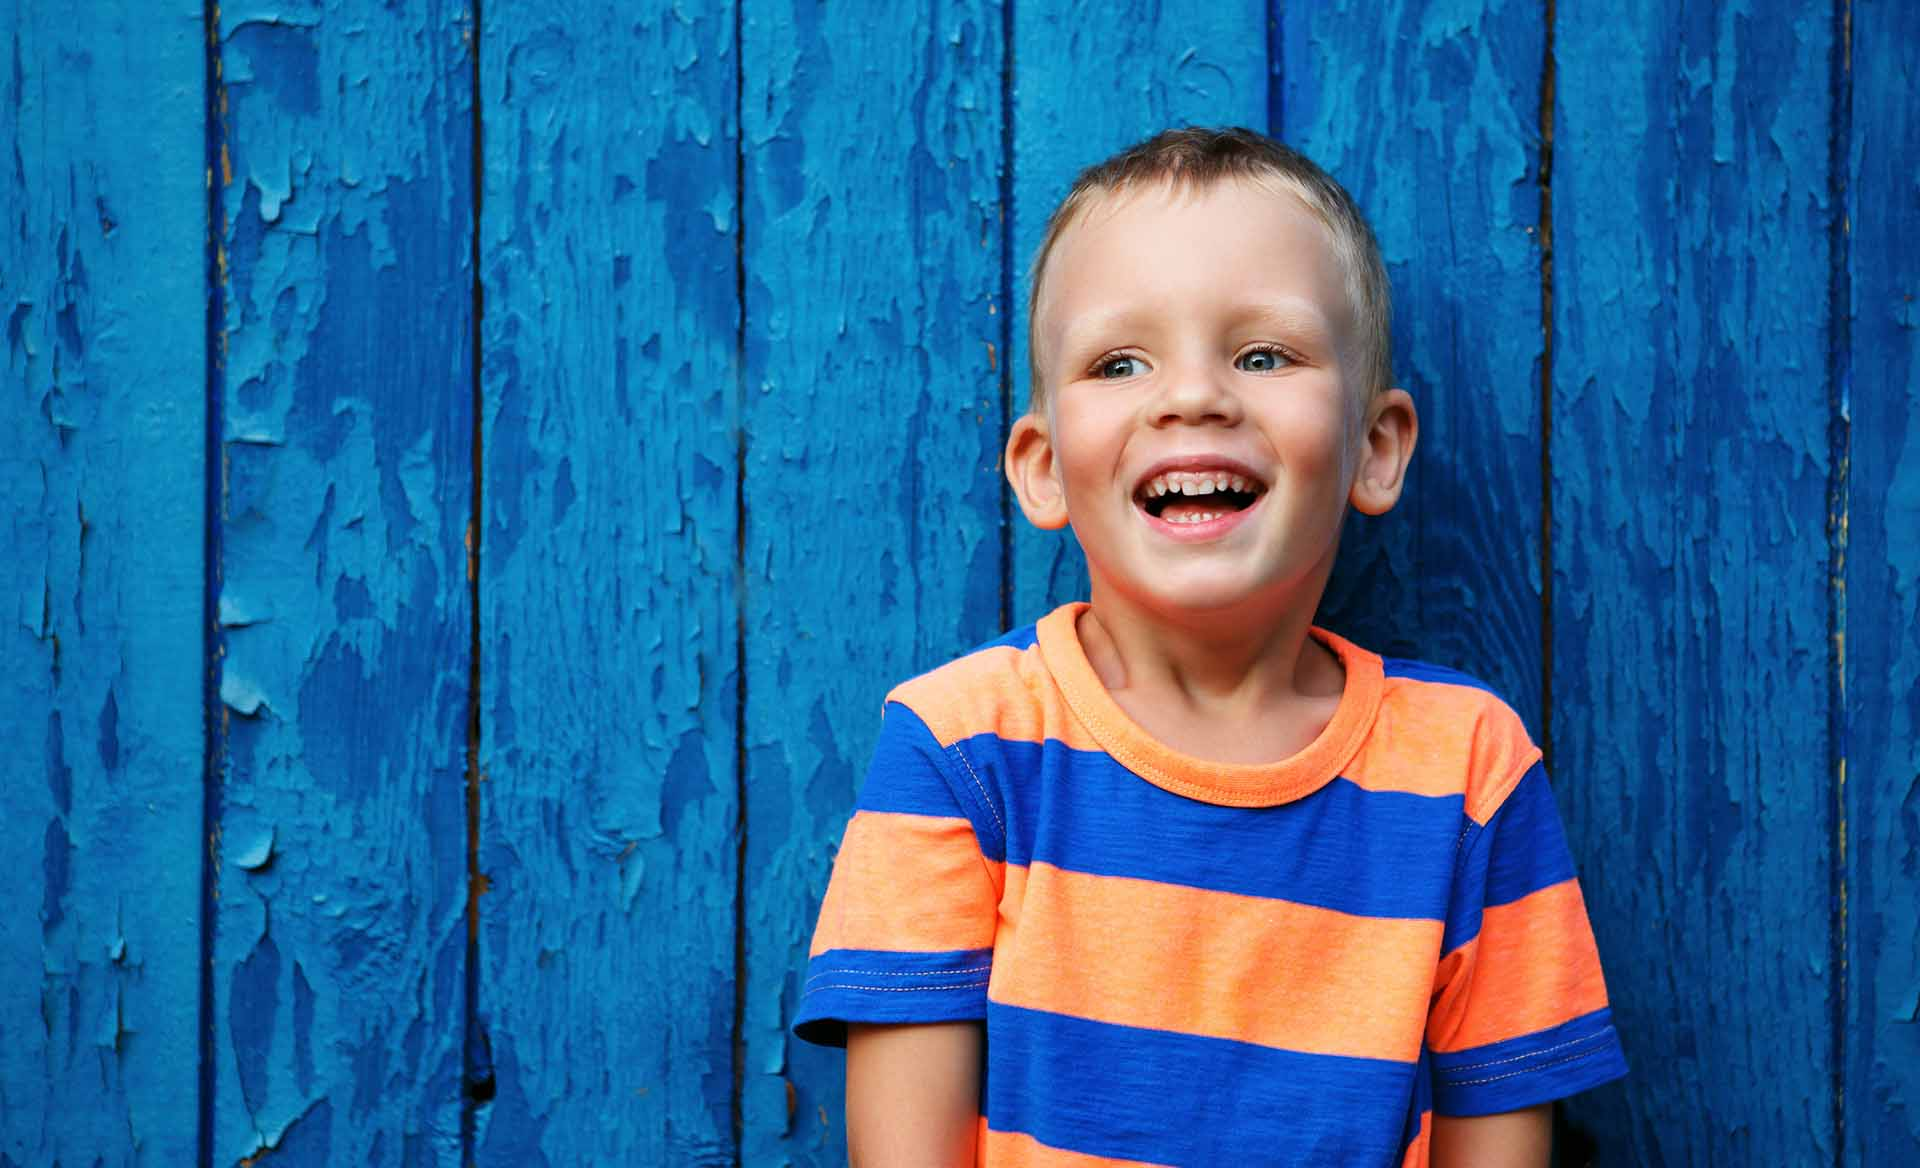 Portrait of happy joyful beautiful little boy against the old textured blue wall